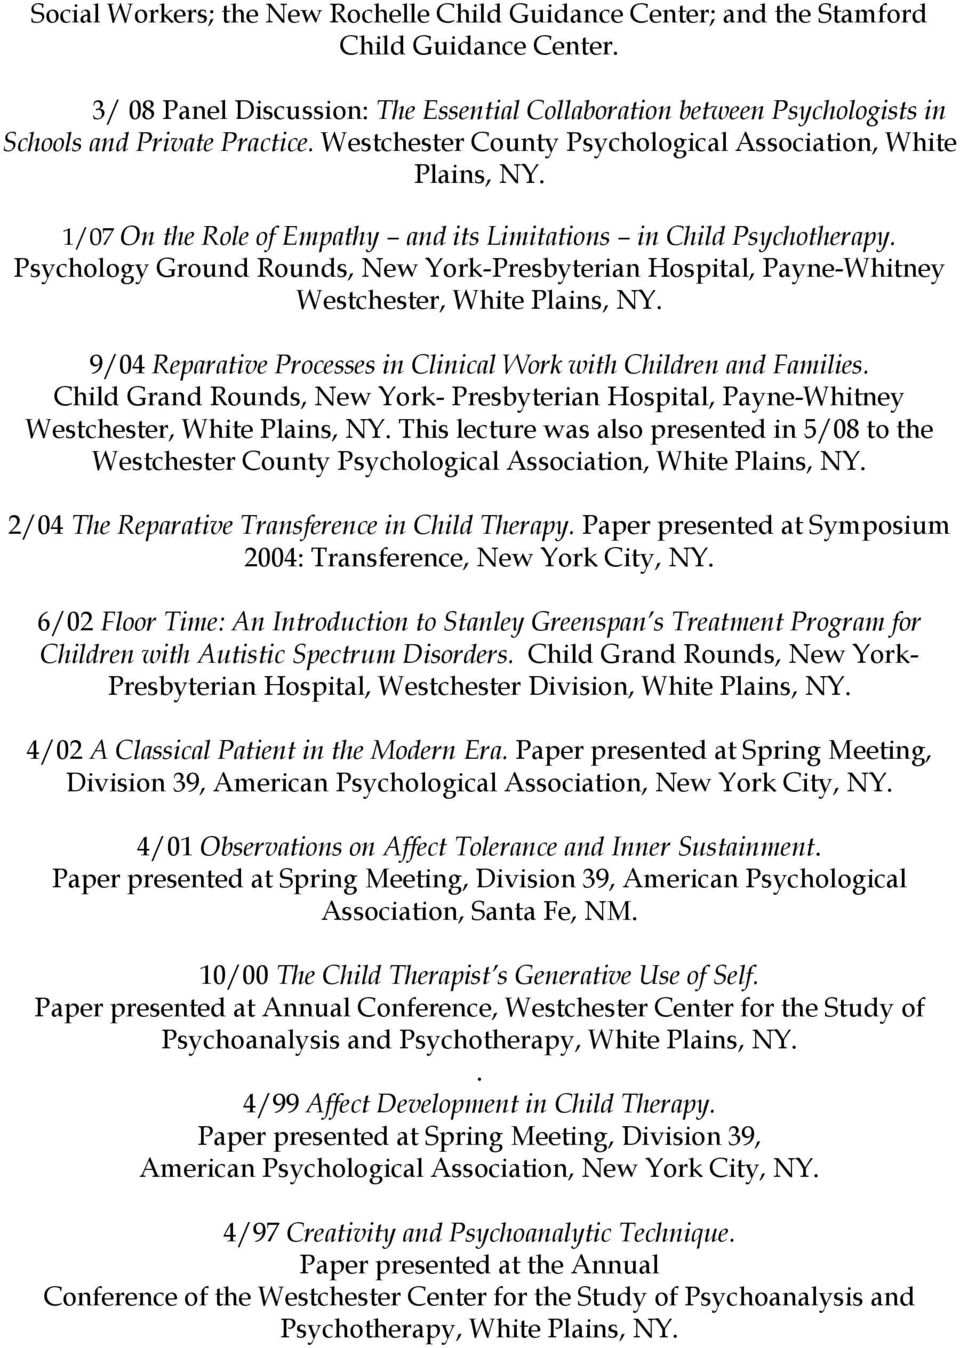 1/07 On the Role of Empathy and its Limitations in Child Psychotherapy. Psychology Ground Rounds, New York-Presbyterian Hospital, Payne-Whitney Westchester, White Plains, NY.